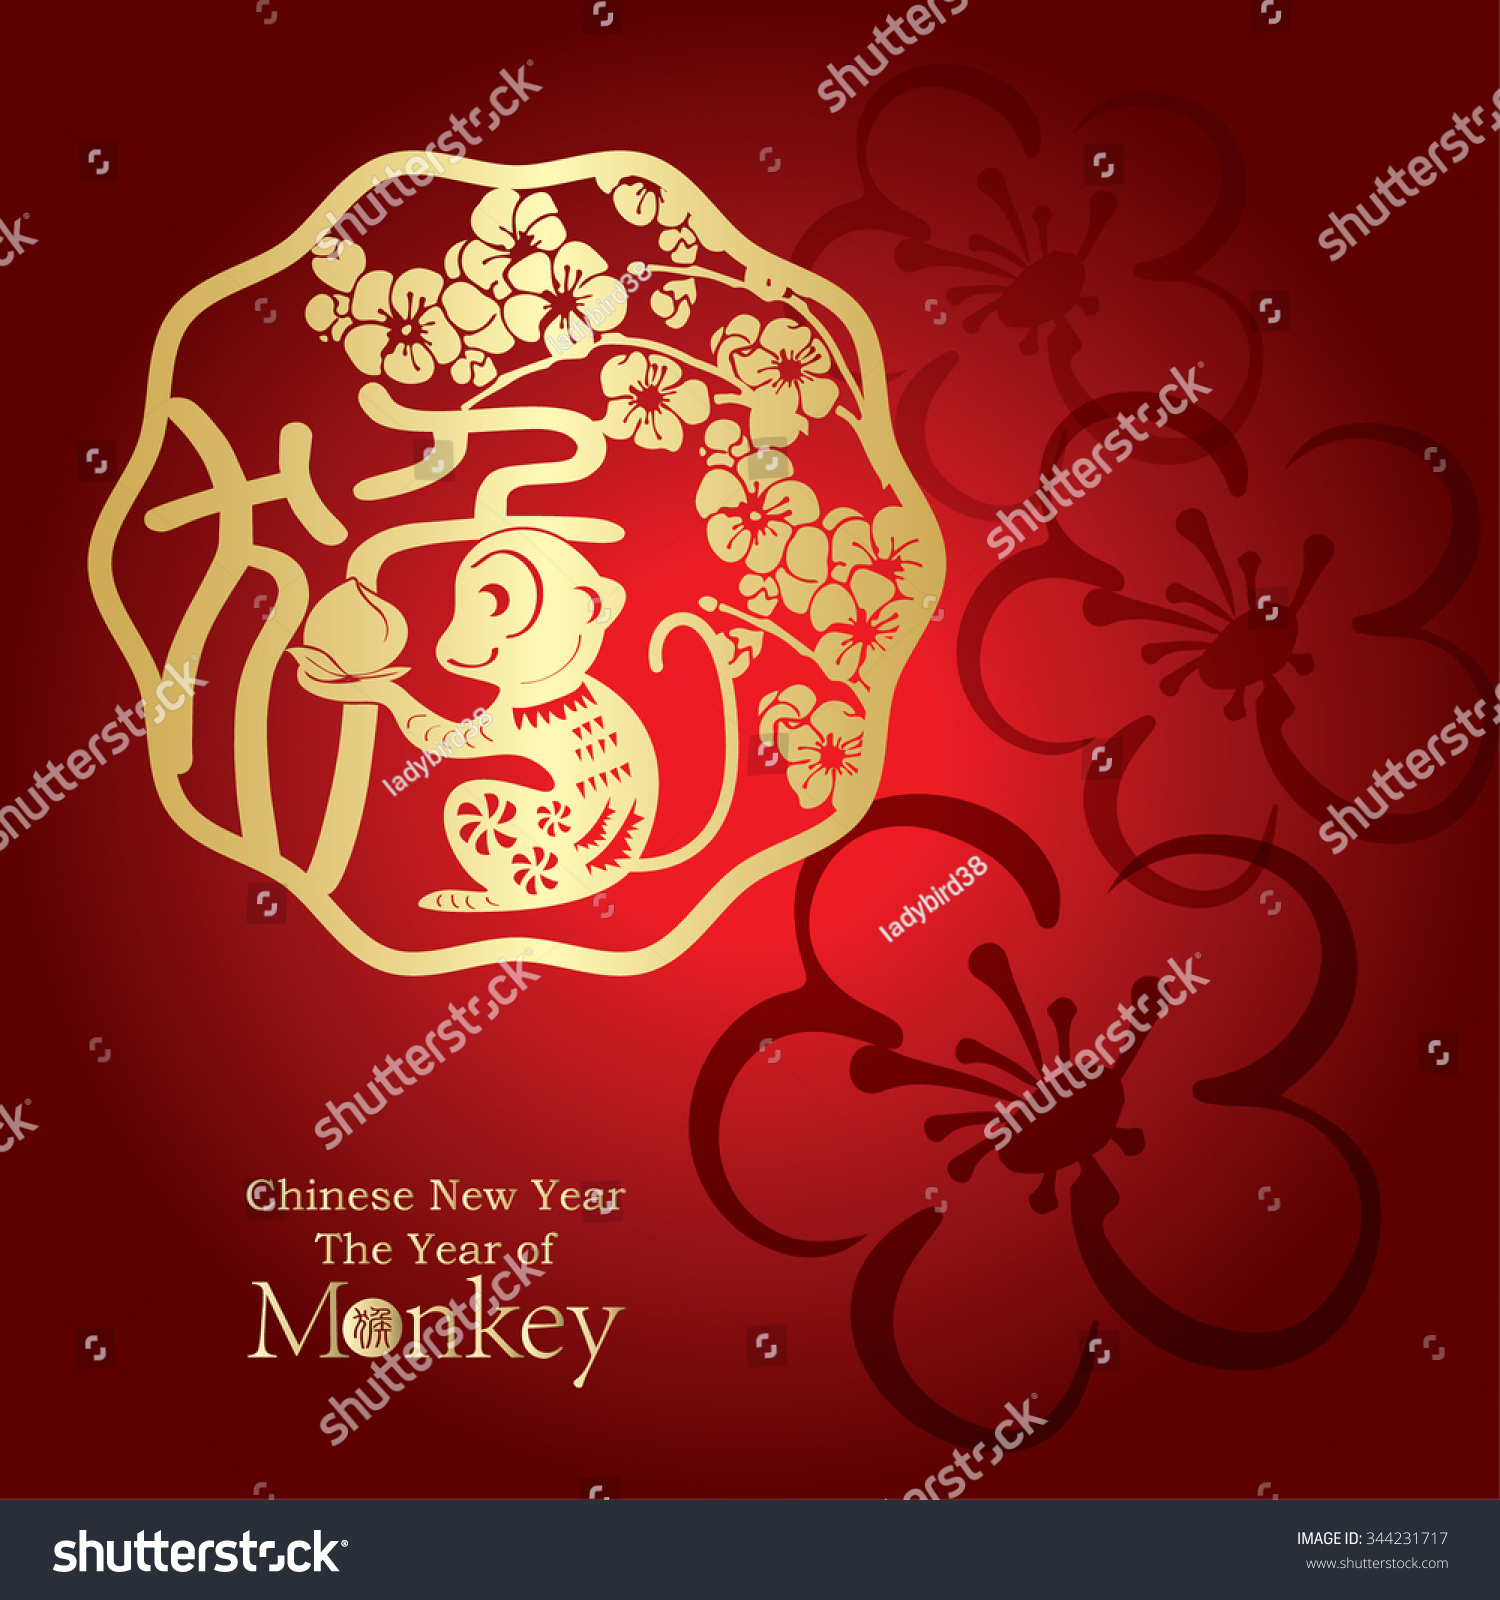 Chinese Zodiac Monkey Translation Small Text Image ...